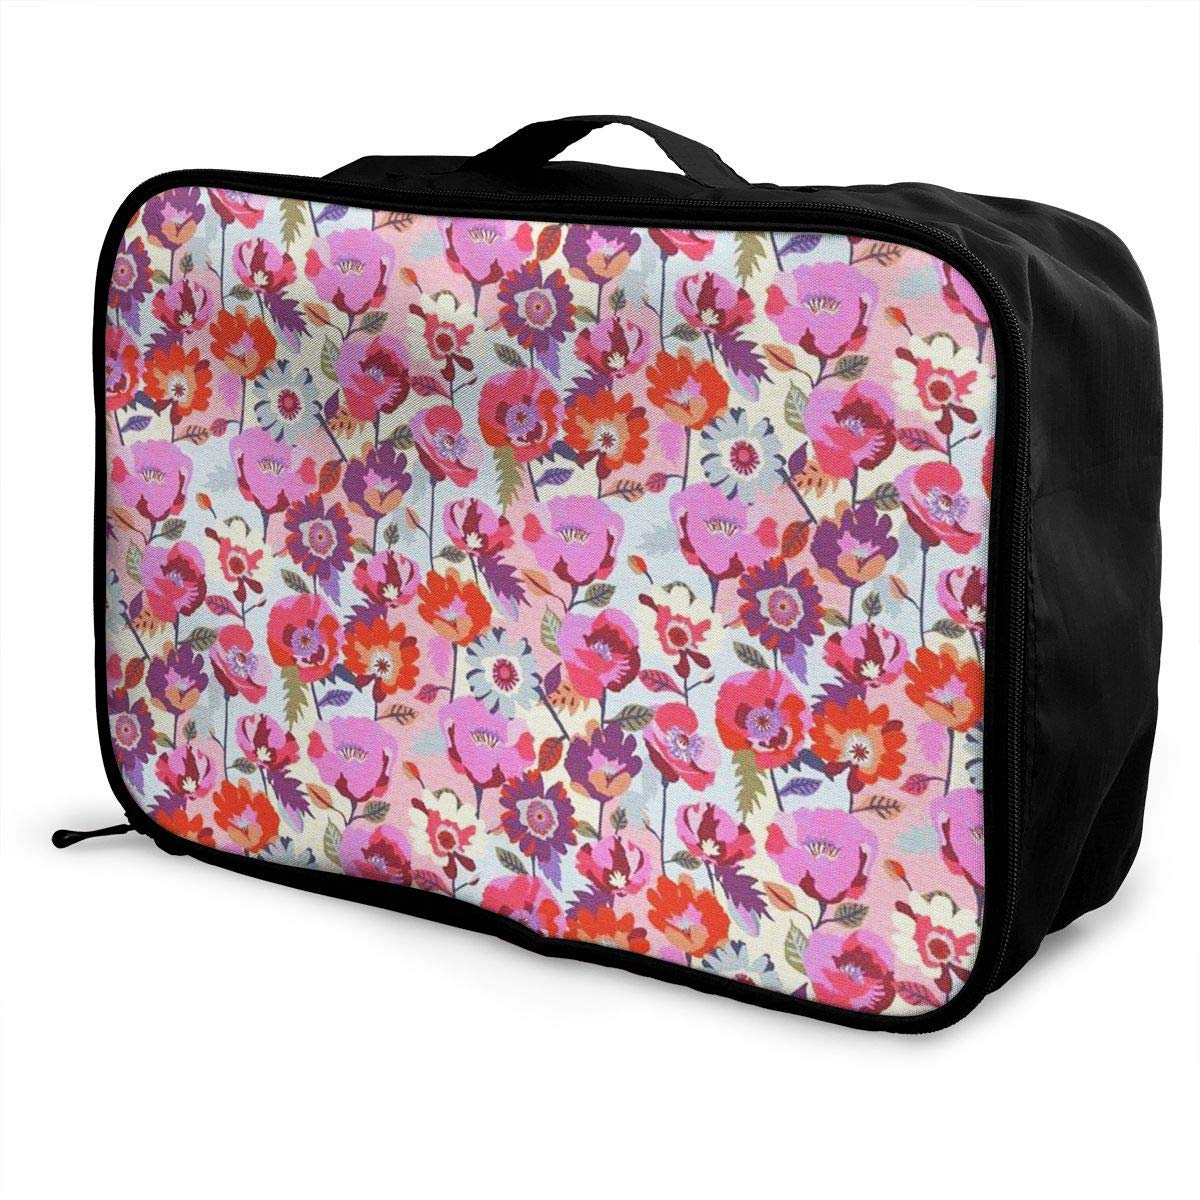 Portable Luggage Duffel Bag Pink Flowers Travel Bags Carry-on In Trolley Handle